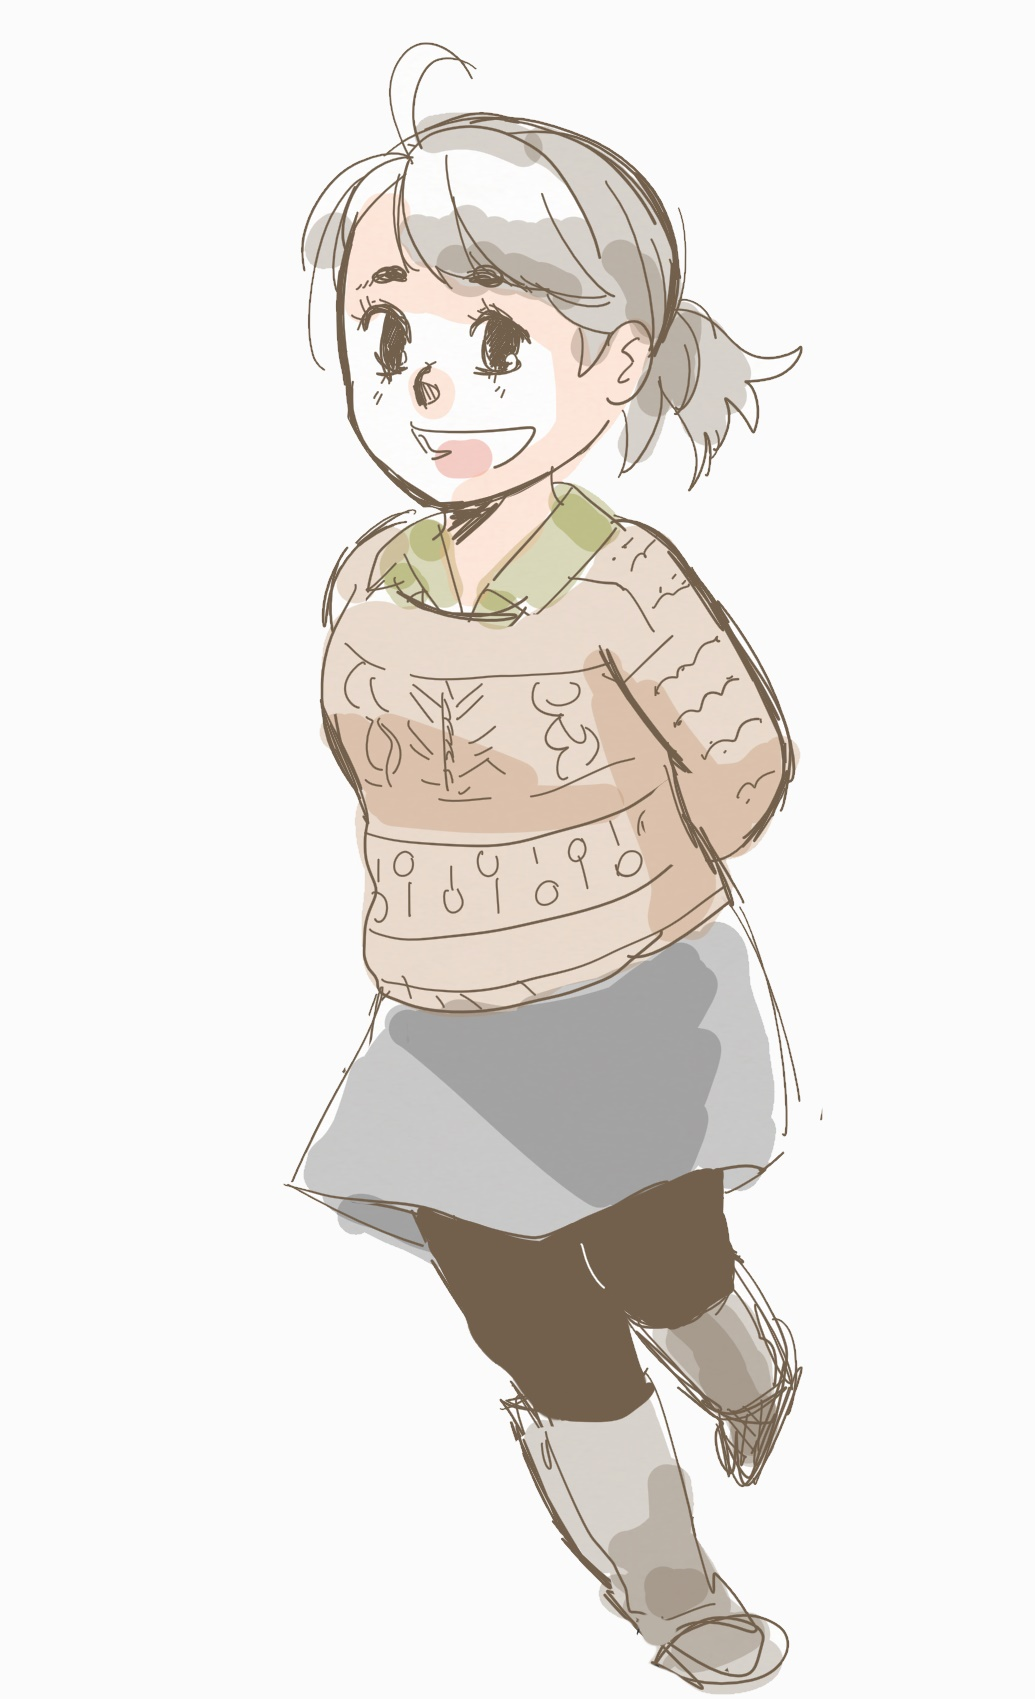 My favorite outfit this past winter - with a sweater I made. (Hi, I also like to doodle and share that here as well!)